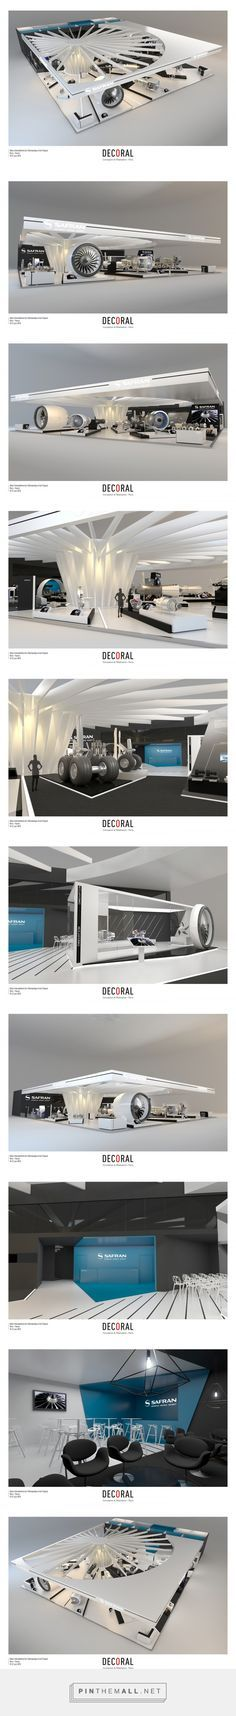 Safran - 2015 on Behance... - a grouped images picture - Pin Them All